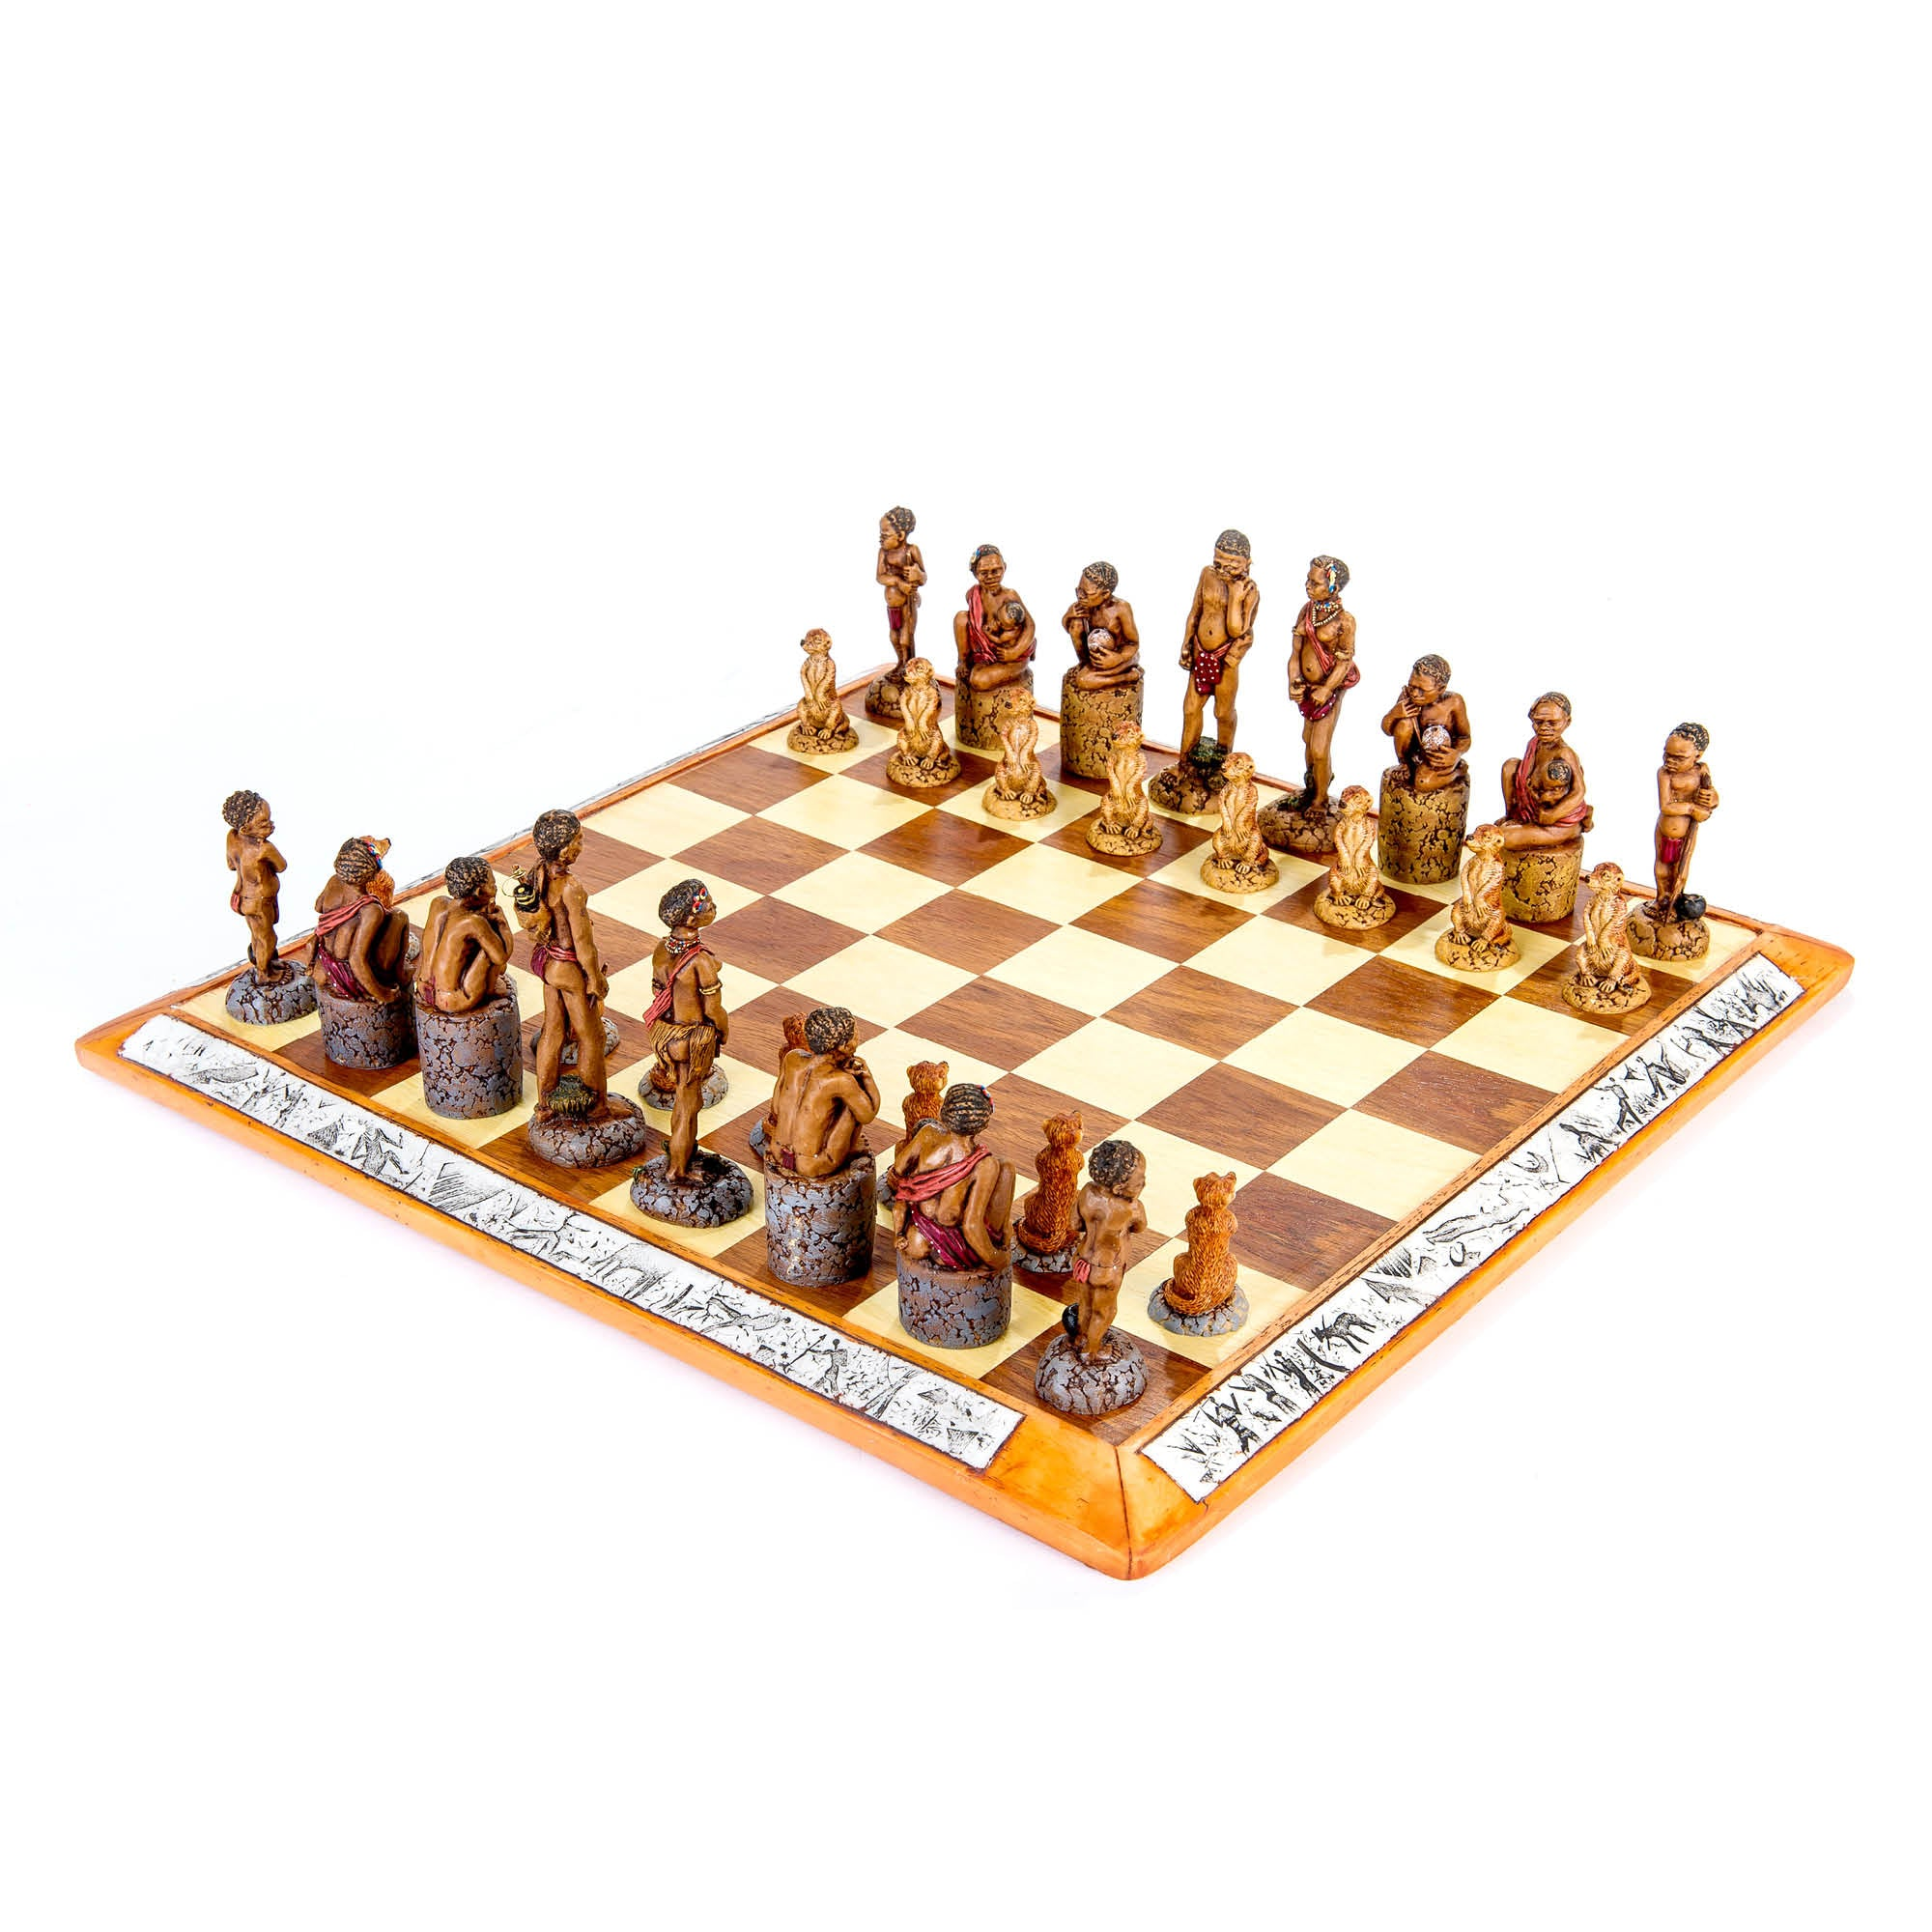 Bushmen Khoisan Chess Set